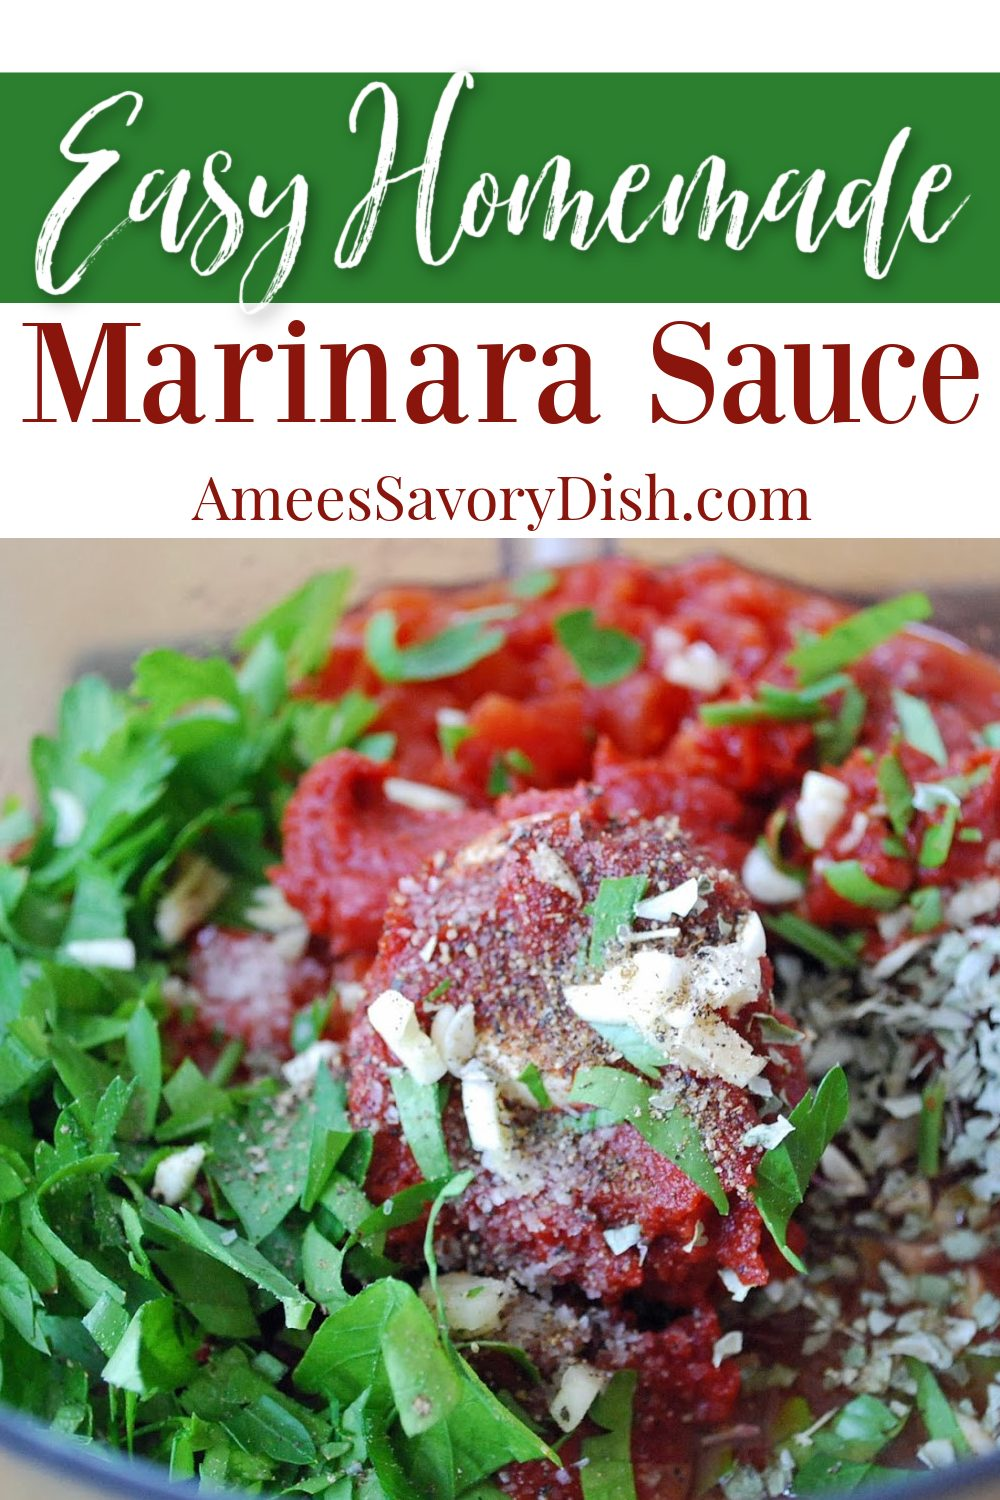 This is a simple and delicious recipe for homemade marinara sauce using canned tomatoes, onions, olive oil, red wine, chicken broth, fresh herbs, and spices. #homemademarinara #pastasauce #easymarinara #marinara #easyItalian via @Ameessavorydish